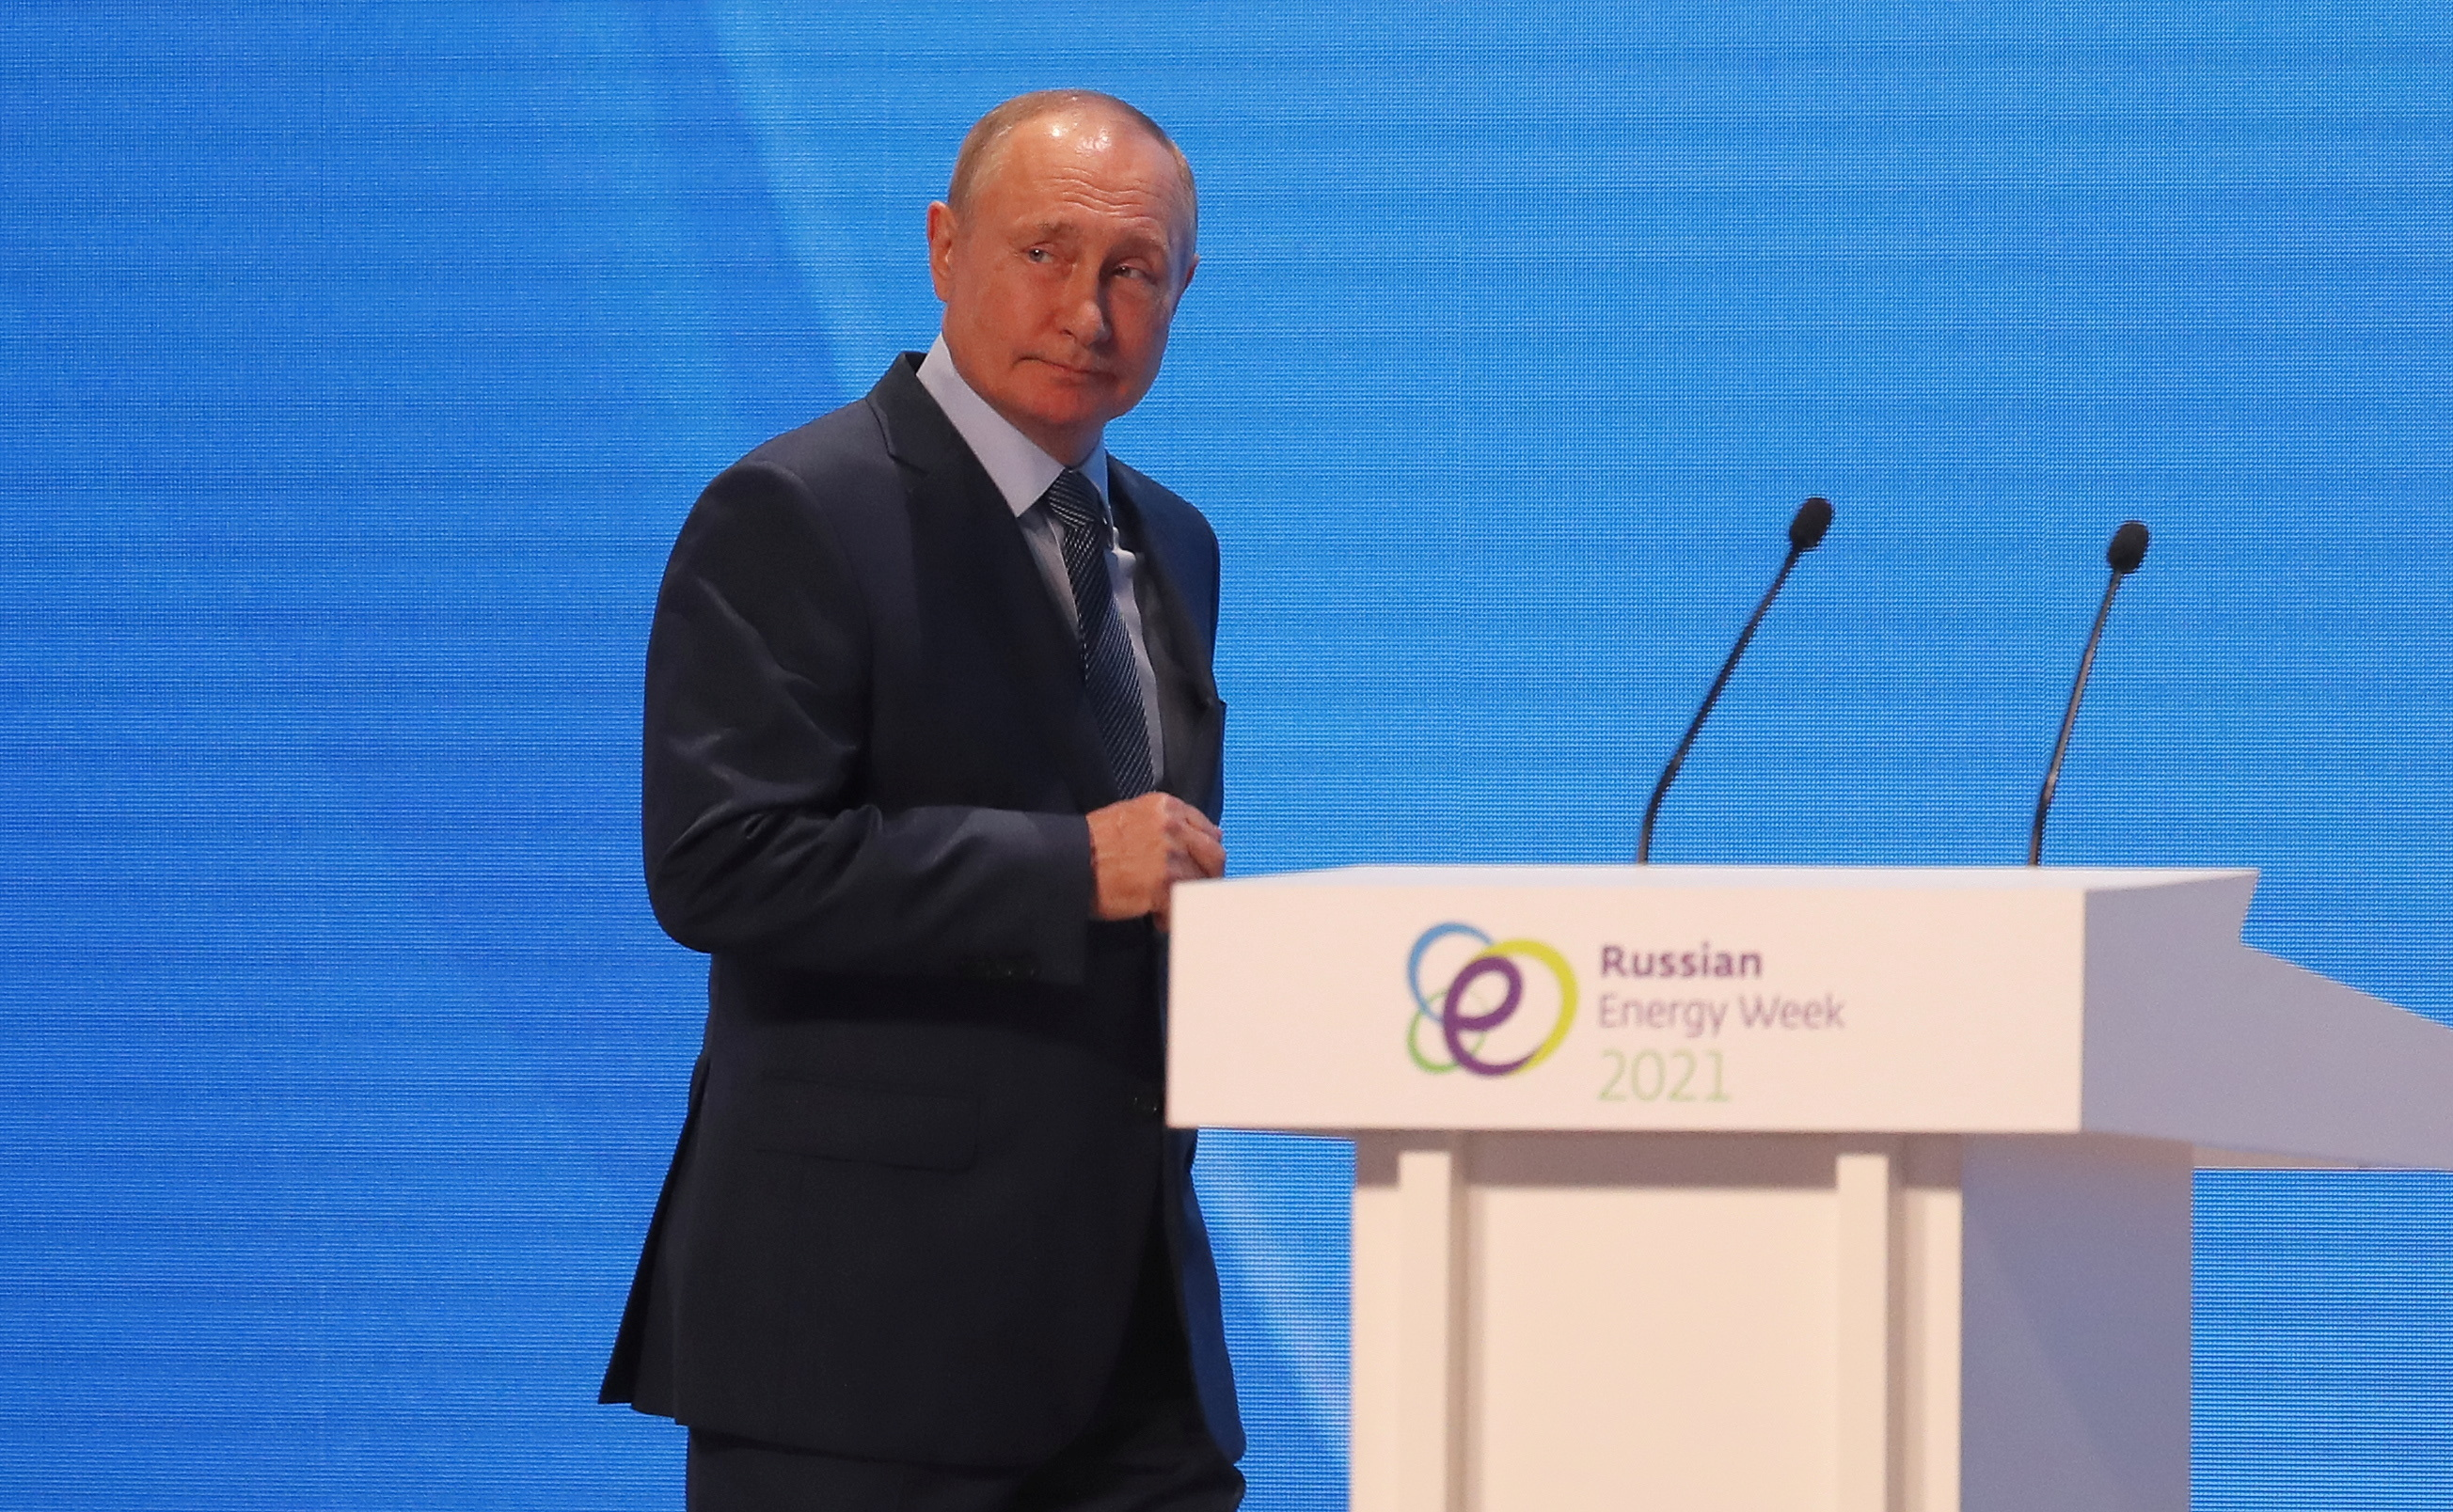 Russian President Vladimir Putin attends a plenary session of the Russian Energy Week International Forum in Moscow, Russia October 13, 2021. Sergei Ilnitsky/Pool via REUTERS